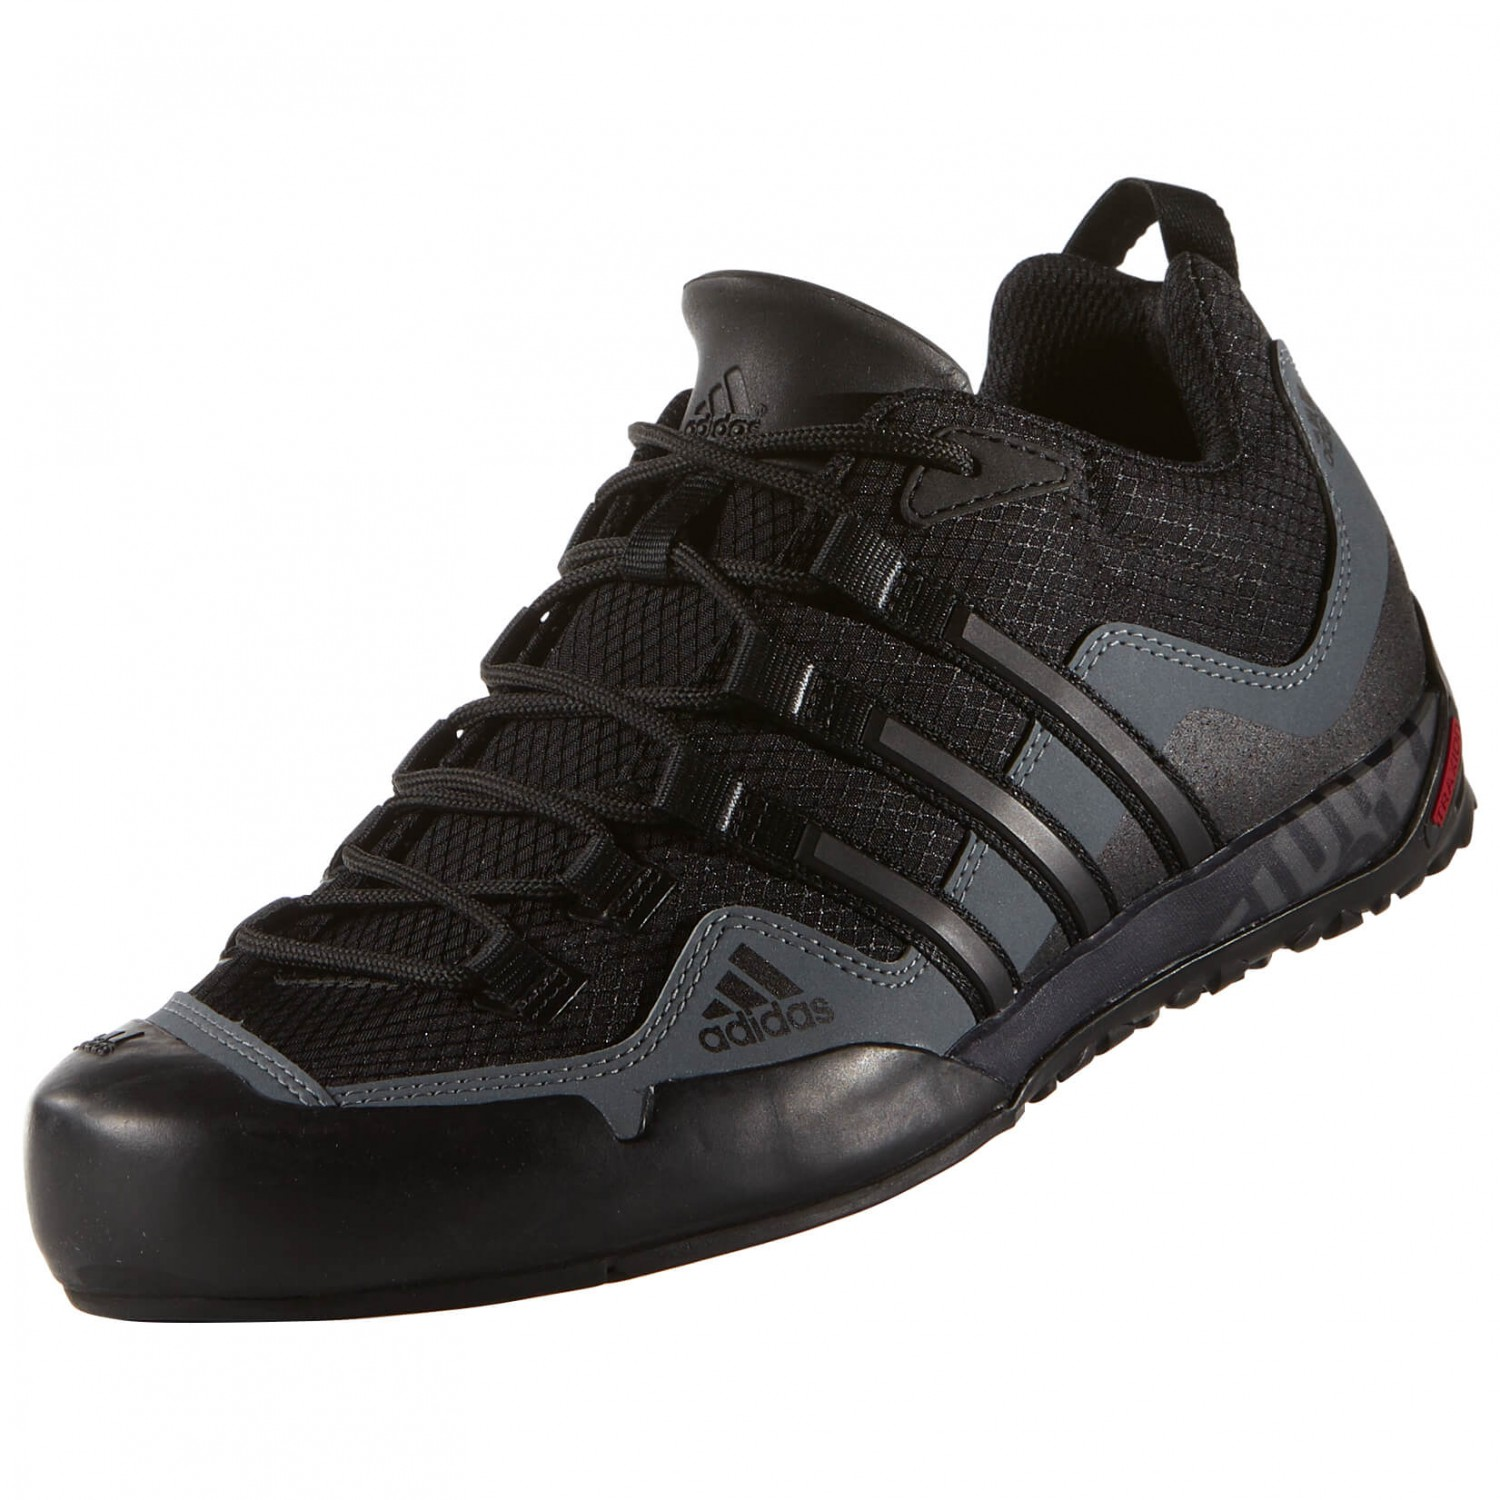 Black Chaussures Adidas Solo Swift Terrex D'approche Carbon6uk 5RjL4A